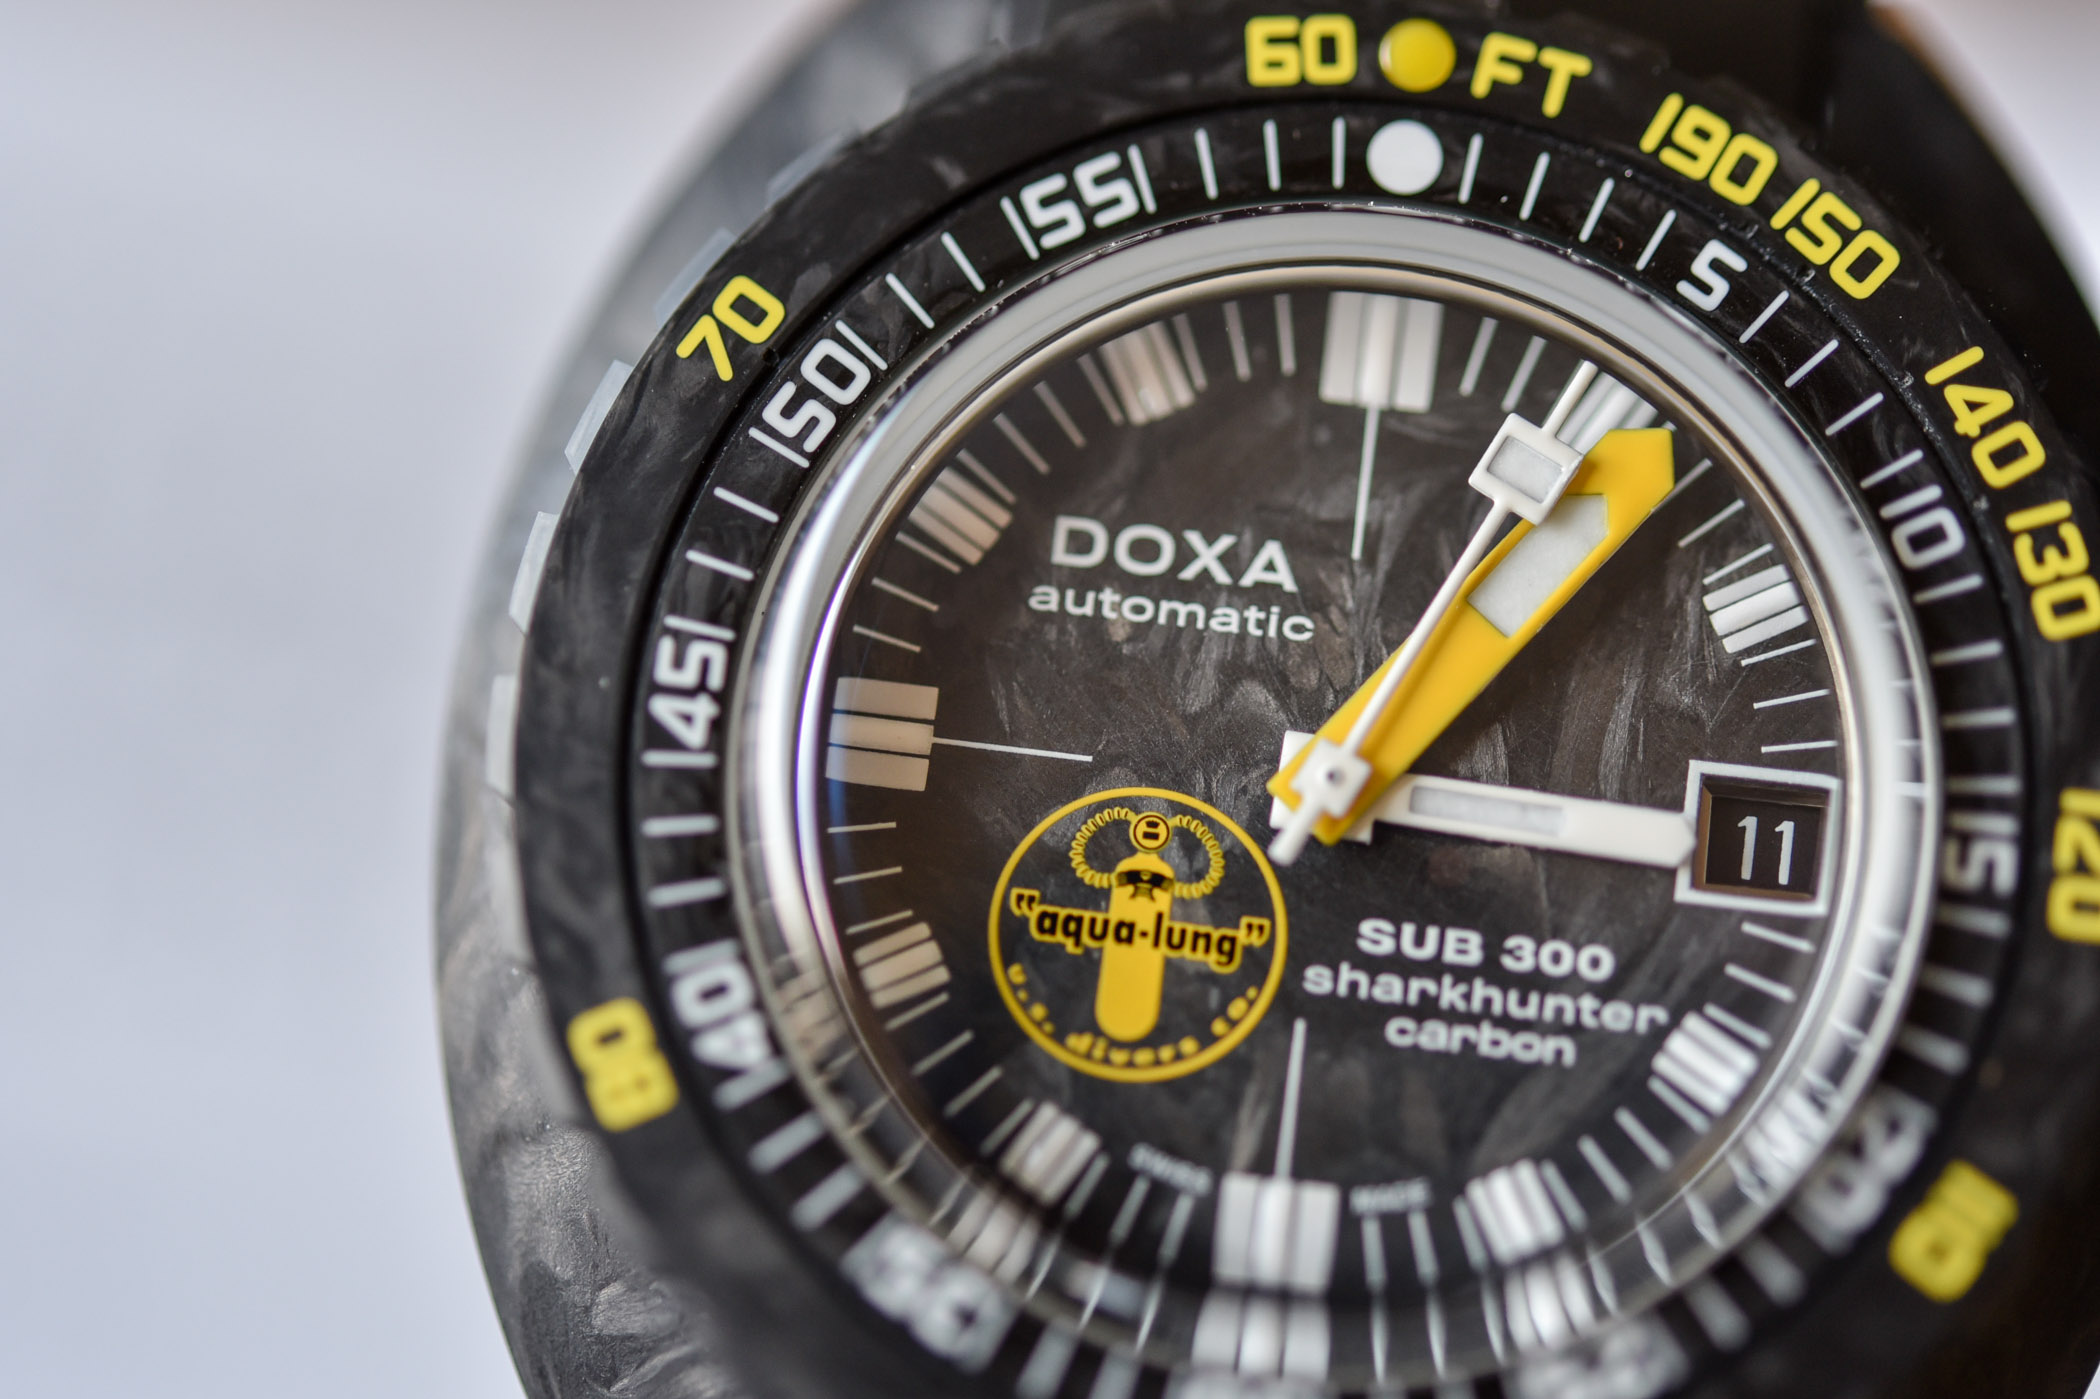 Doxa SUB 300 Carbon Aqua Lung Sharkhunter